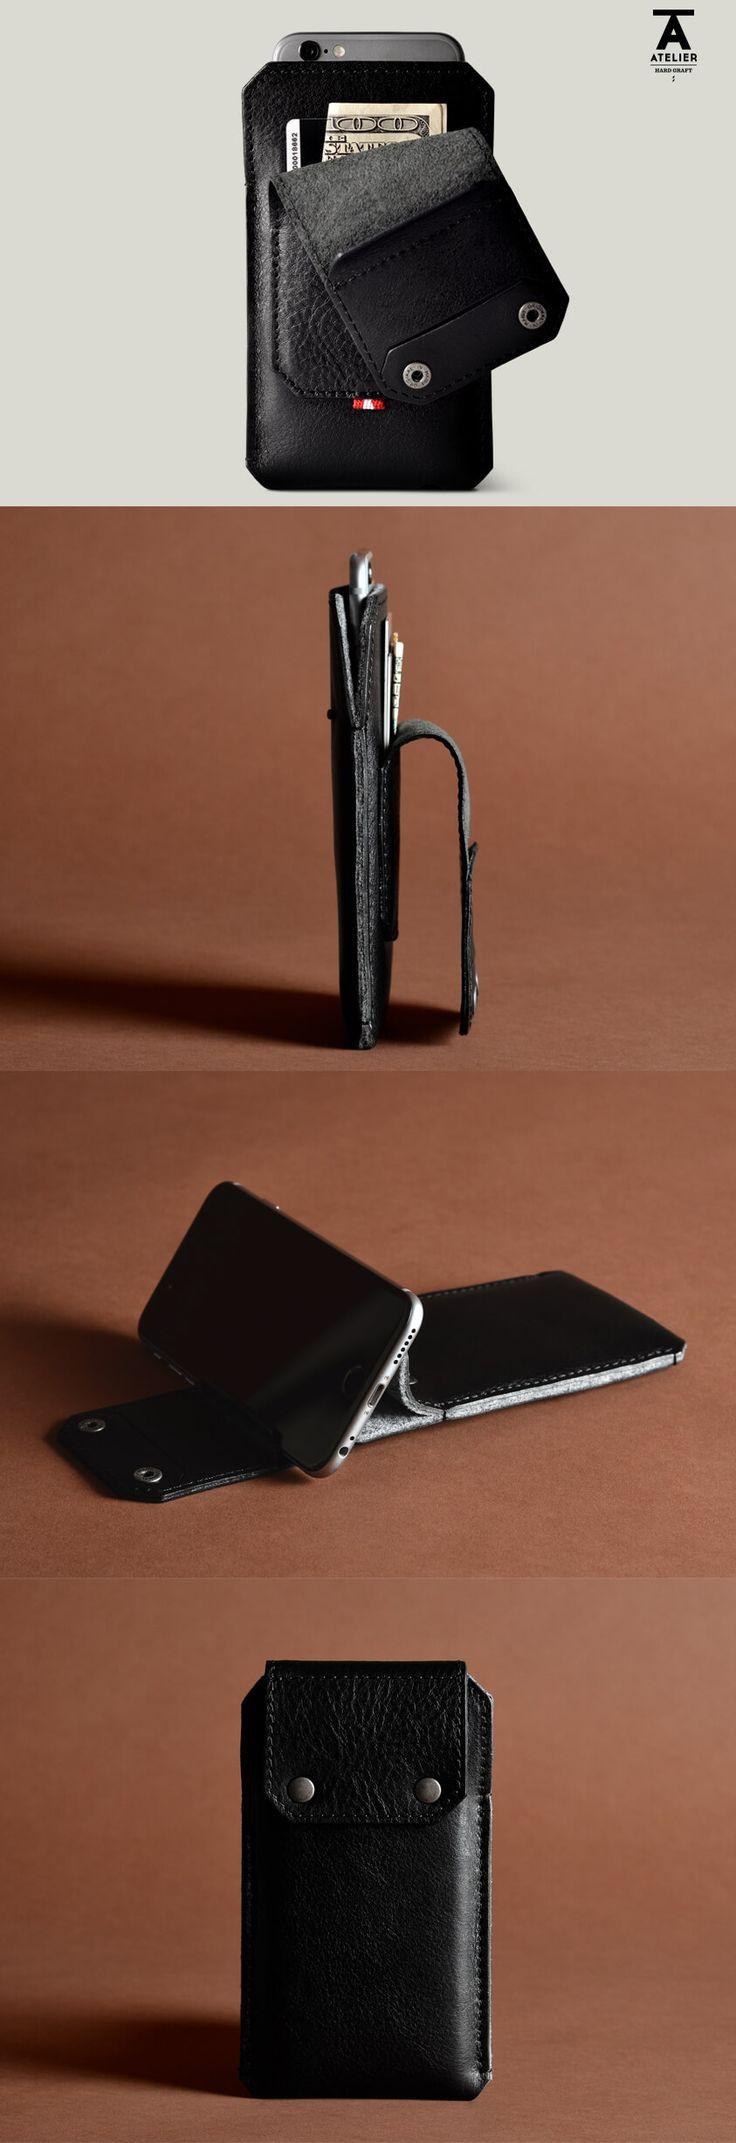 This phone case is absolutely perfect for air travel. Take your phone, wallet, and possibly car keys out all together when going through the security line. Atelier All in One Phone Case & Stand by @hardgraft #leather #nattyguy #spon